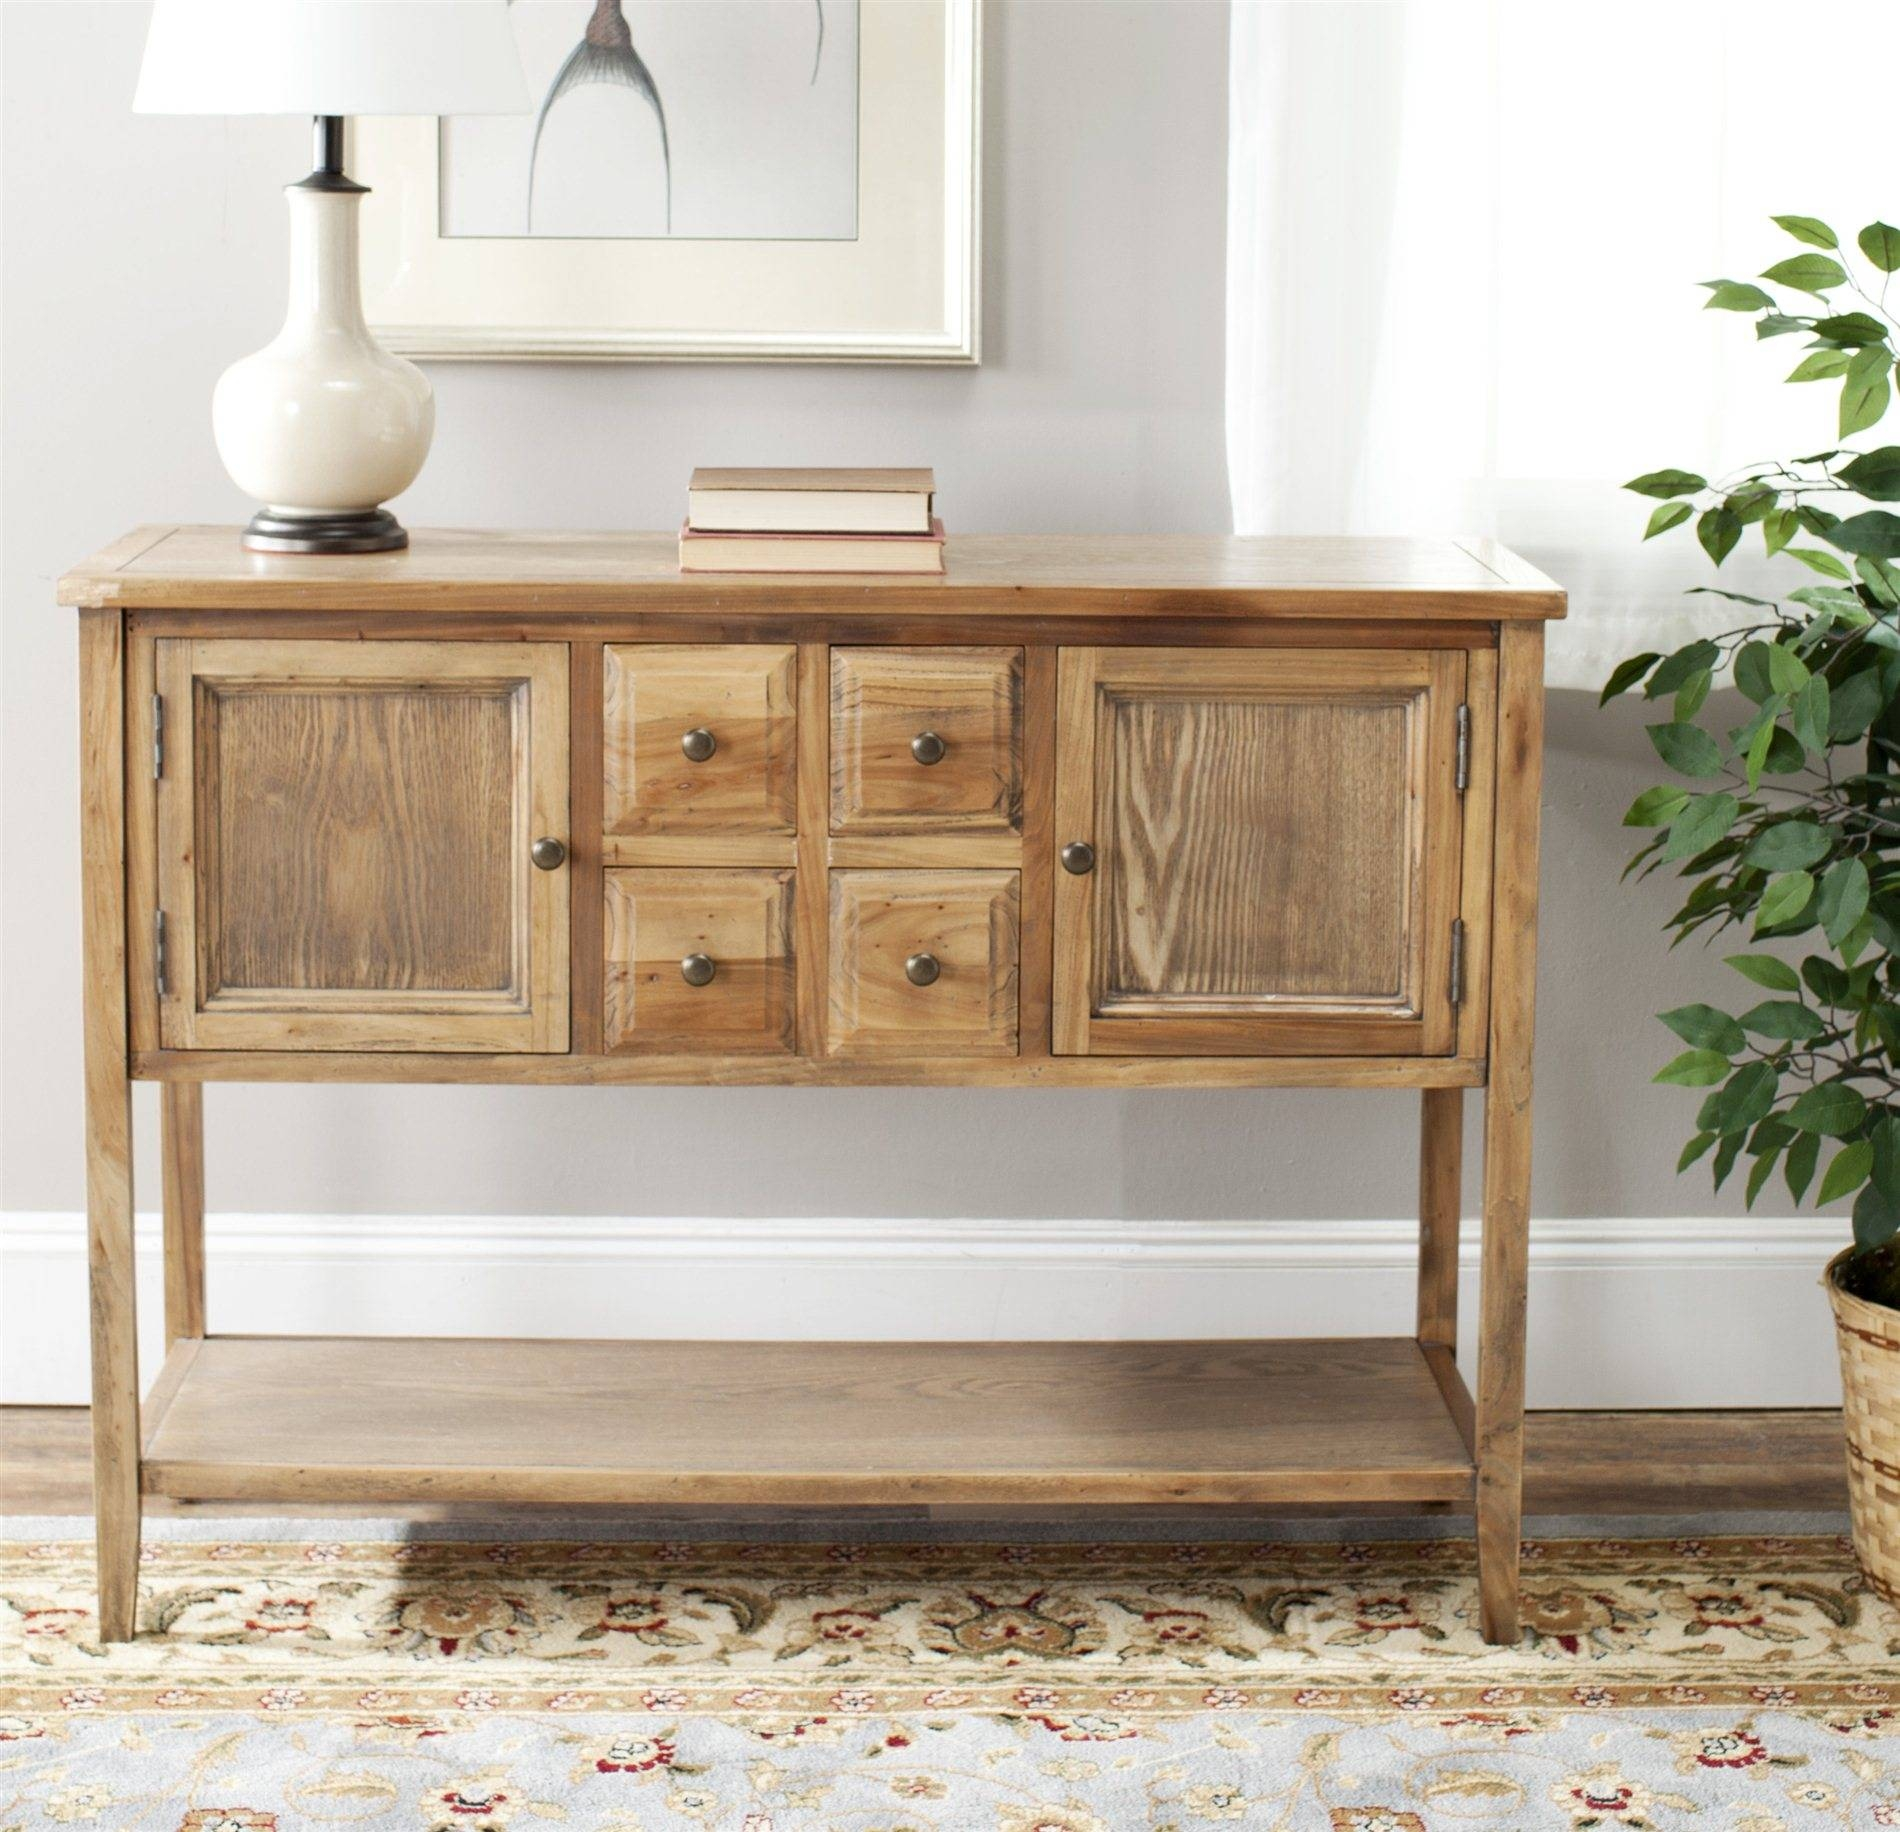 Safavieh Amh6517A Charlotte Sideboard Sfv Amh6517A Intended For Current Safavieh Sideboards (#8 of 15)